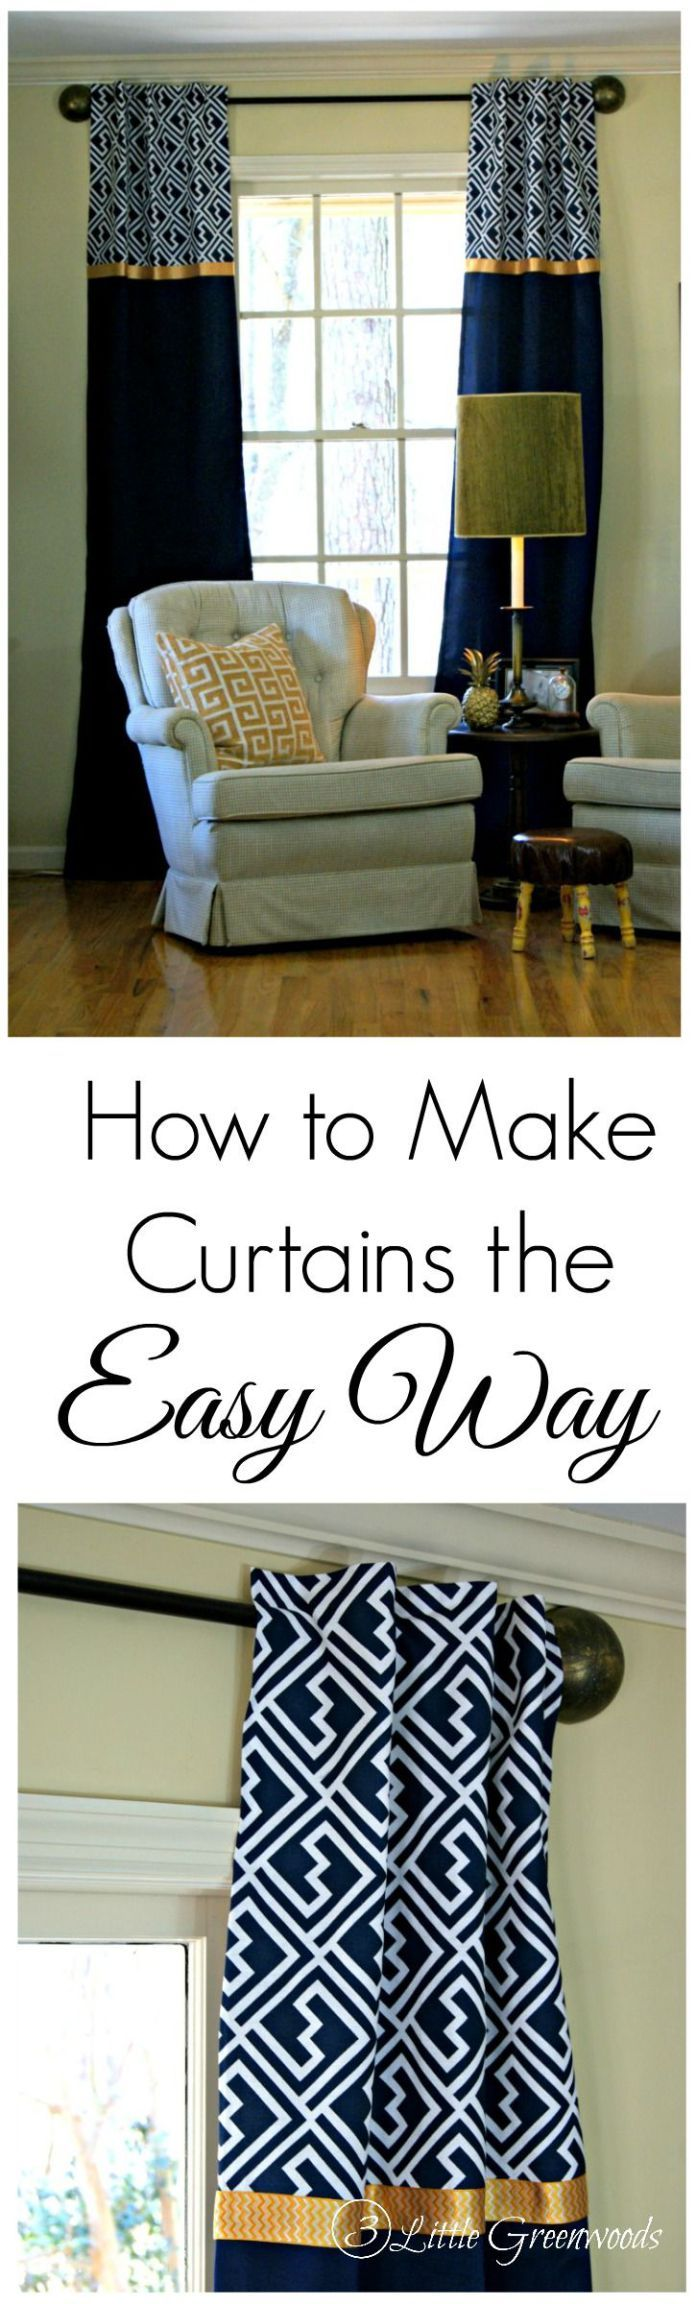 Best Diy Crafts Ideas For Your Home : Learn how to make curtains The ...